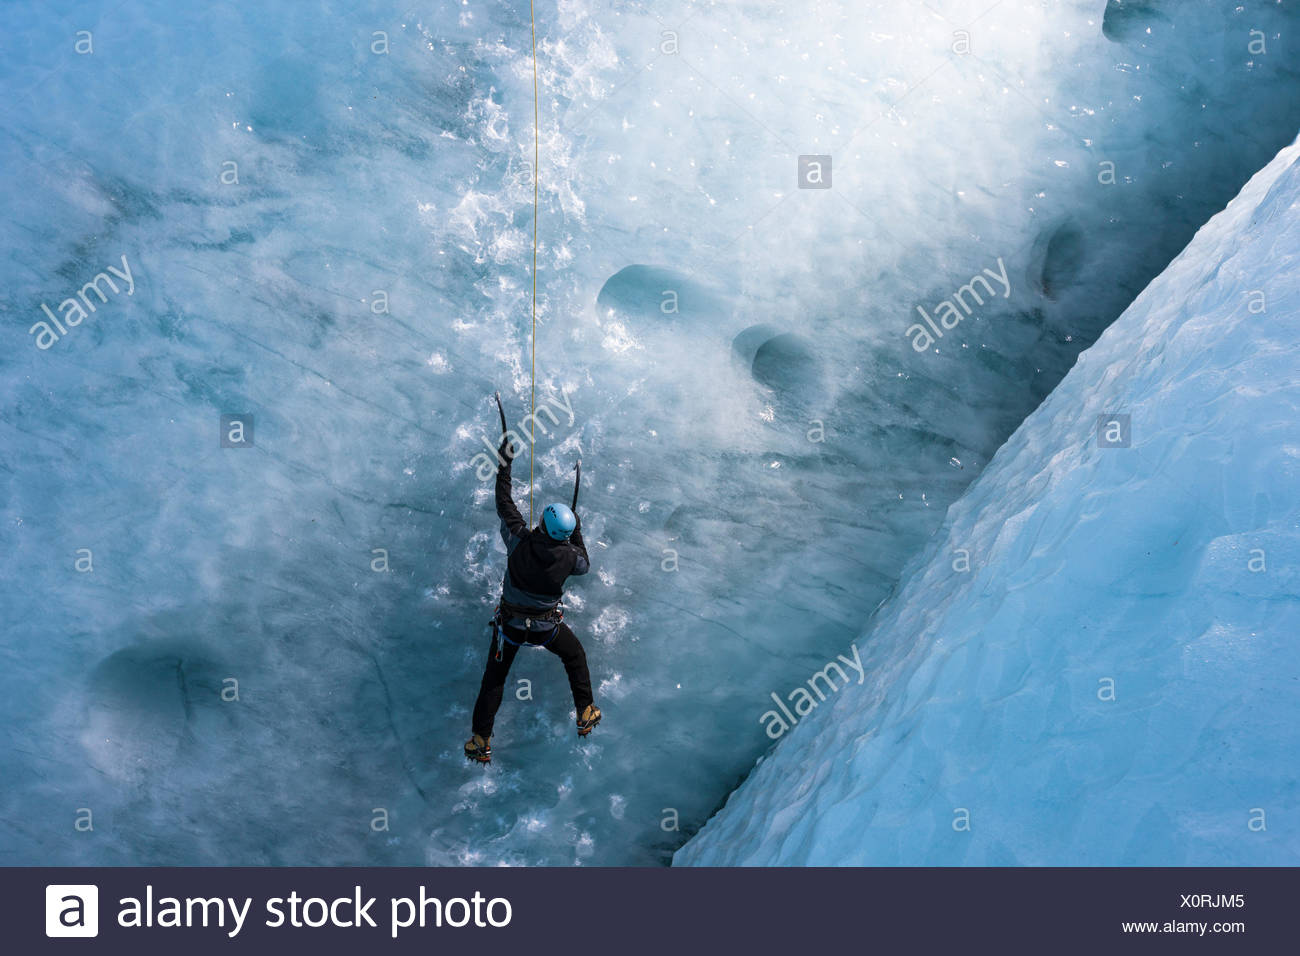 Man climbing vertical glacier ice wall - Stock Image